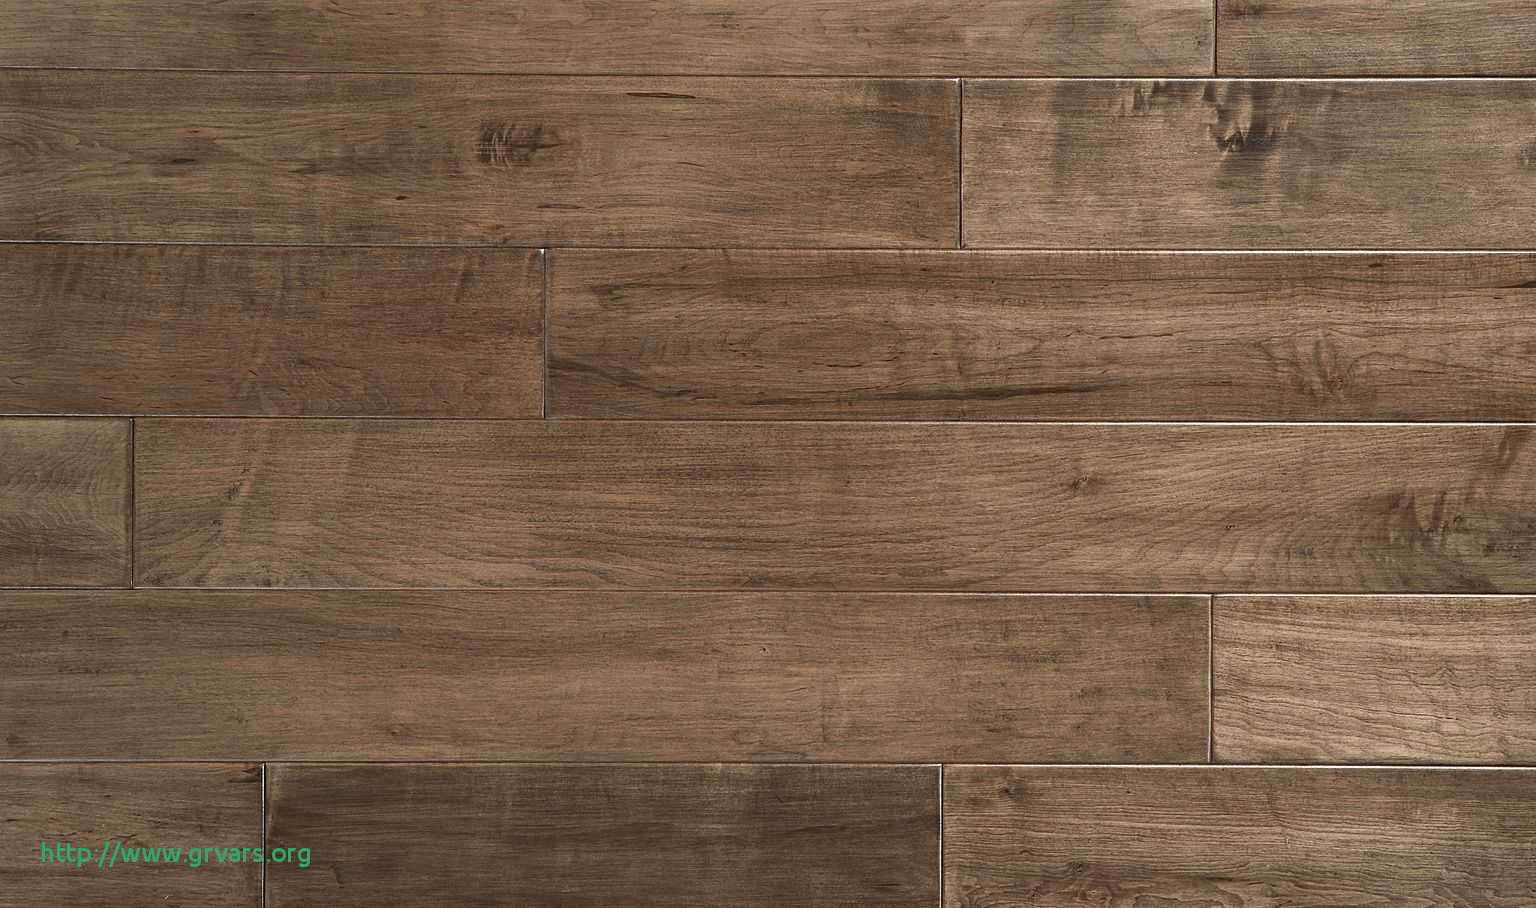 Engineered Hardwood Flooring Definition Of 19 Meilleur De Strip Flooring Definition Ideas Blog for Antique Medium Brown Hardwood Floors Maple Hardwood Flooring